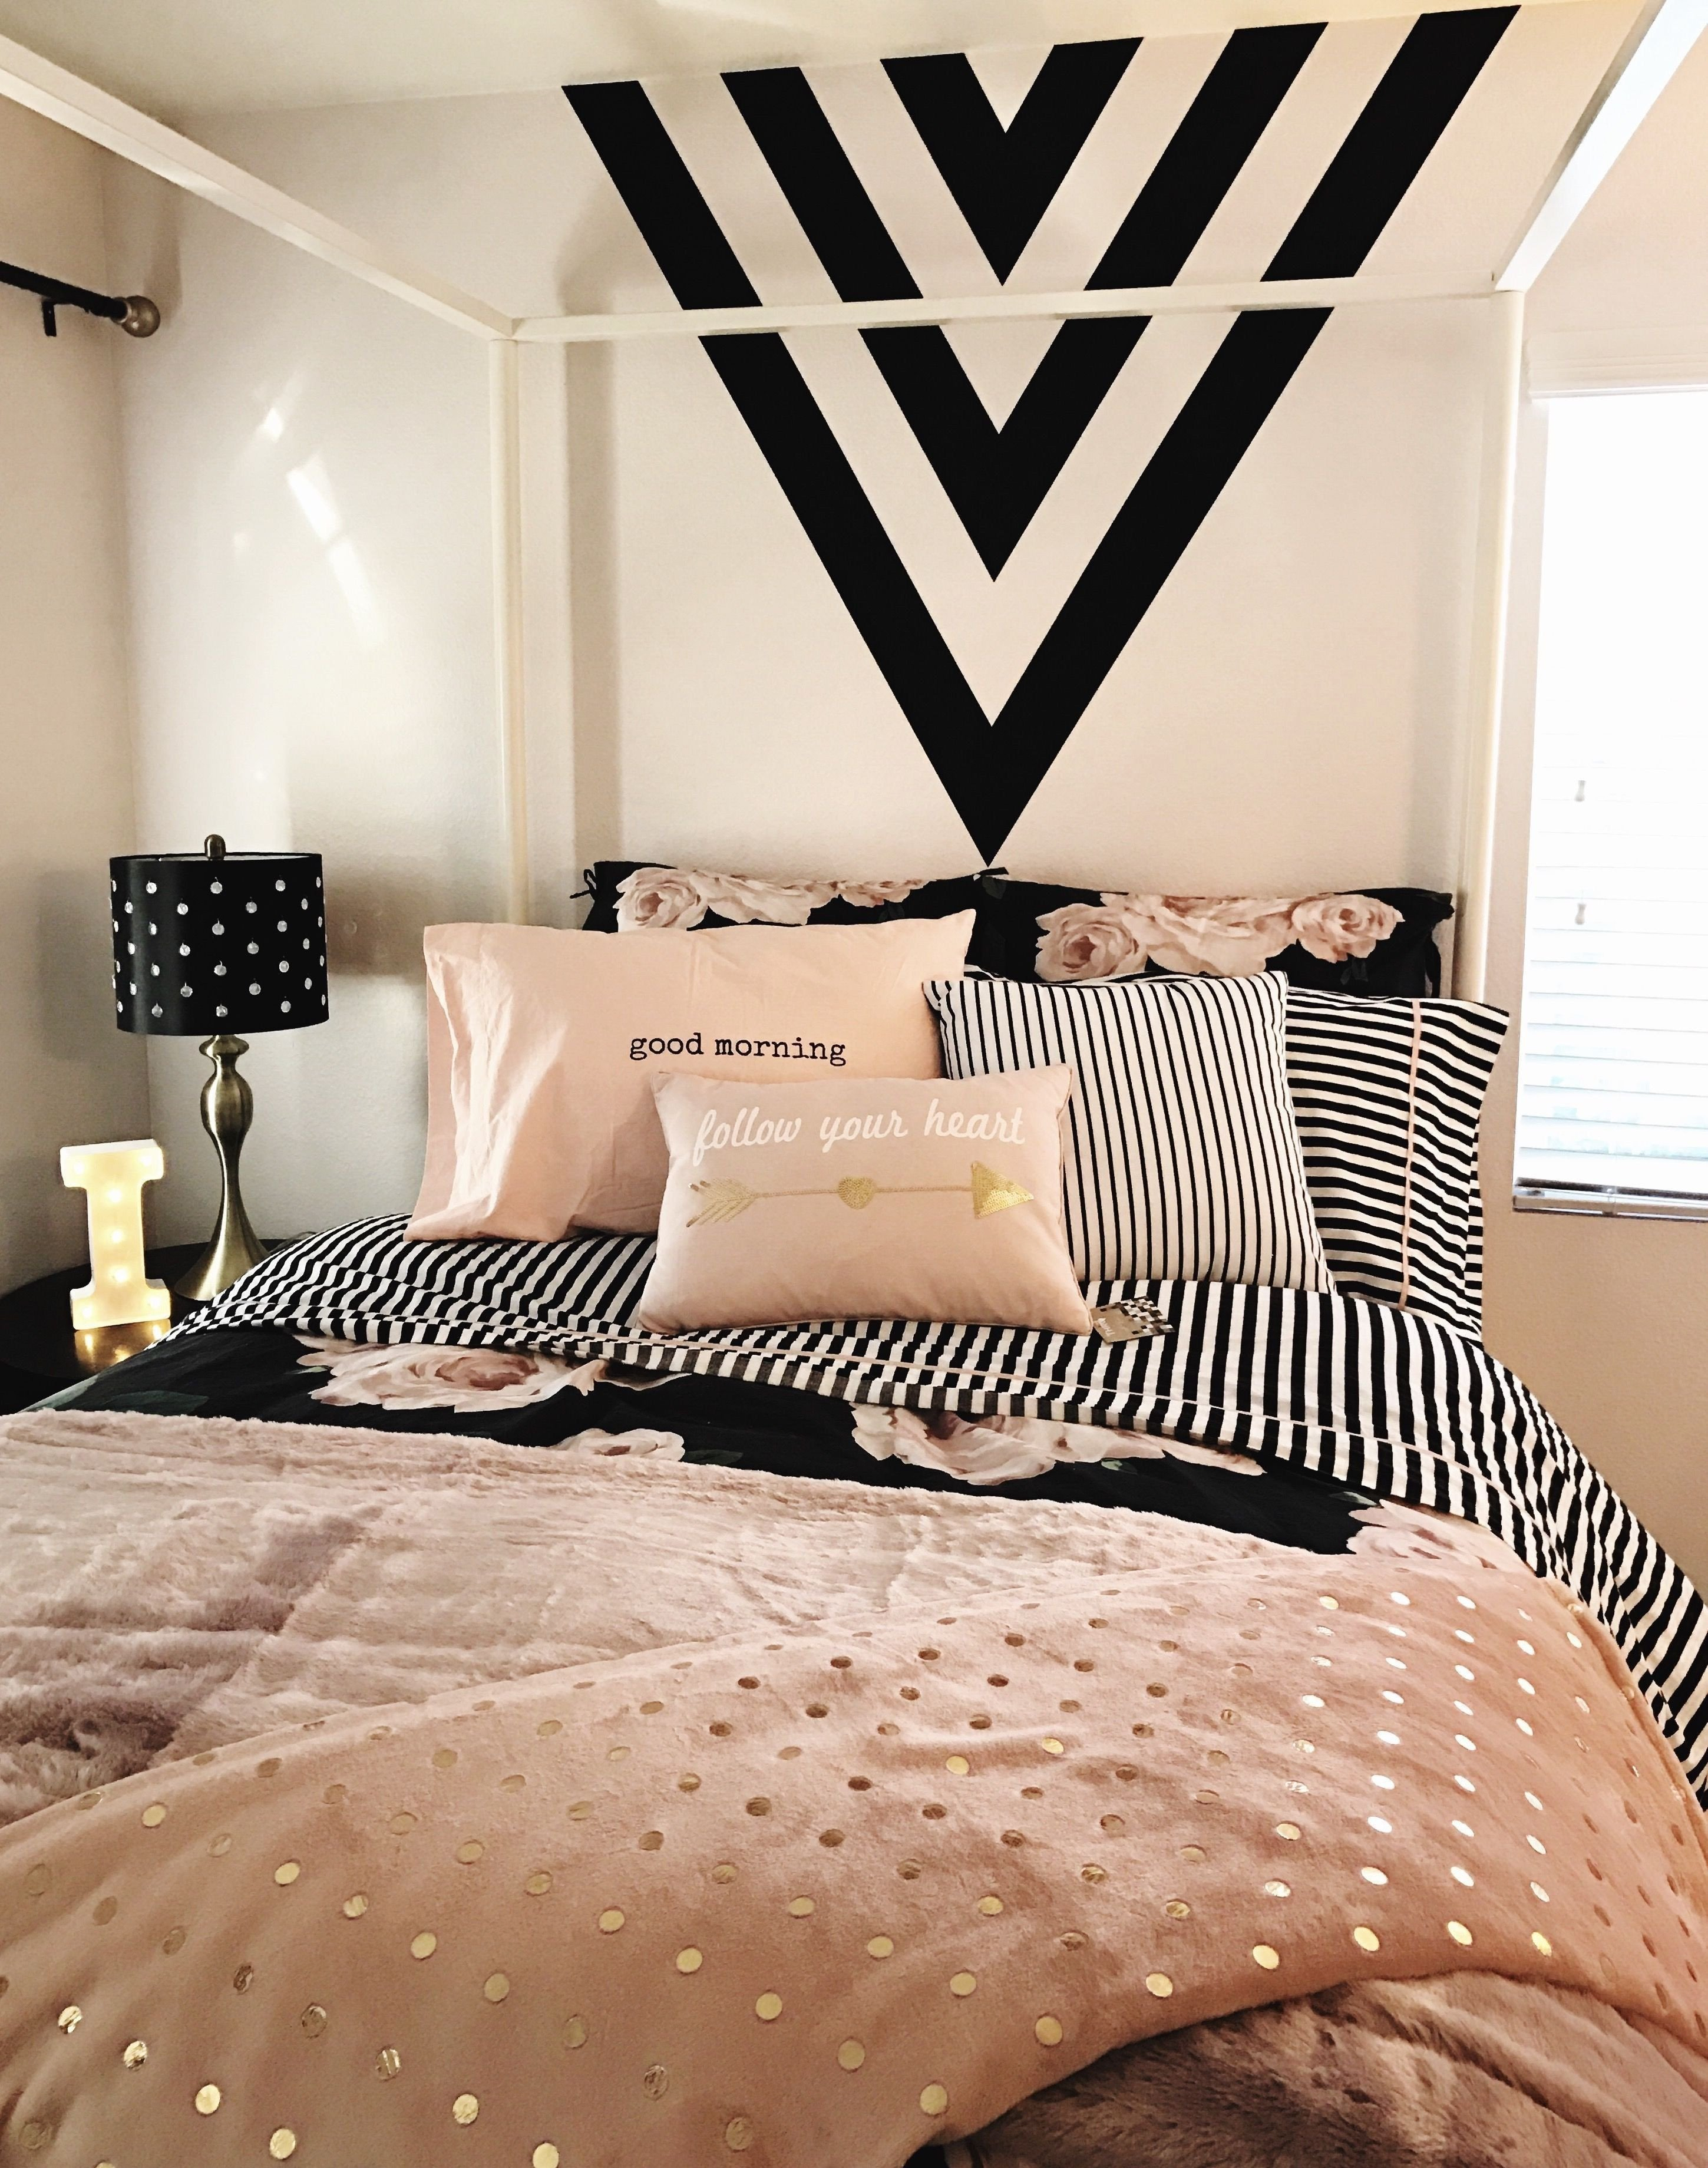 White and Gold Bedroom Ideas Elegant Unique Silver and White Bedroom Designs